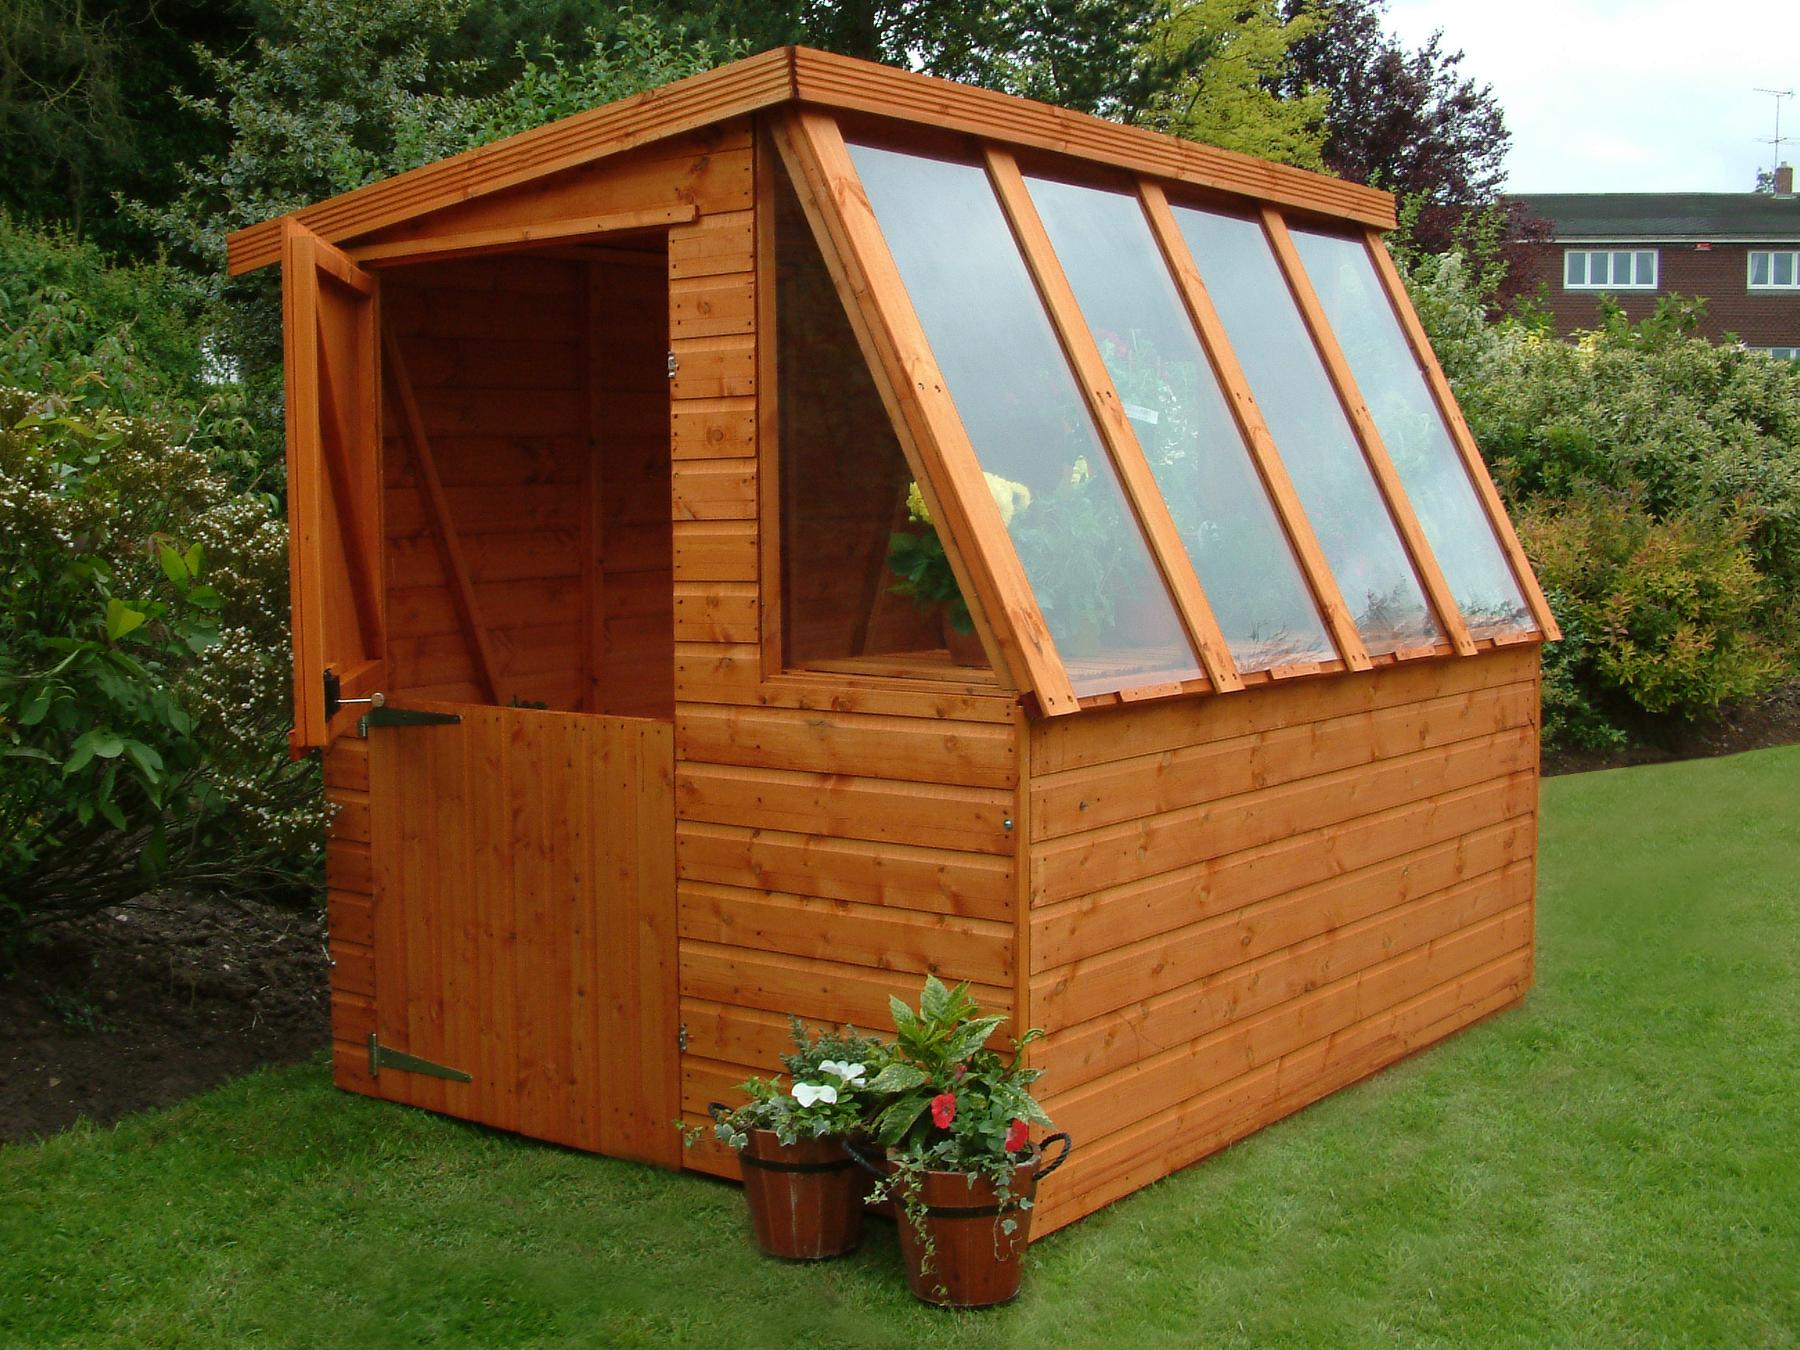 Potting sheds shed plans kits - Backyard sheds plans ideas ...